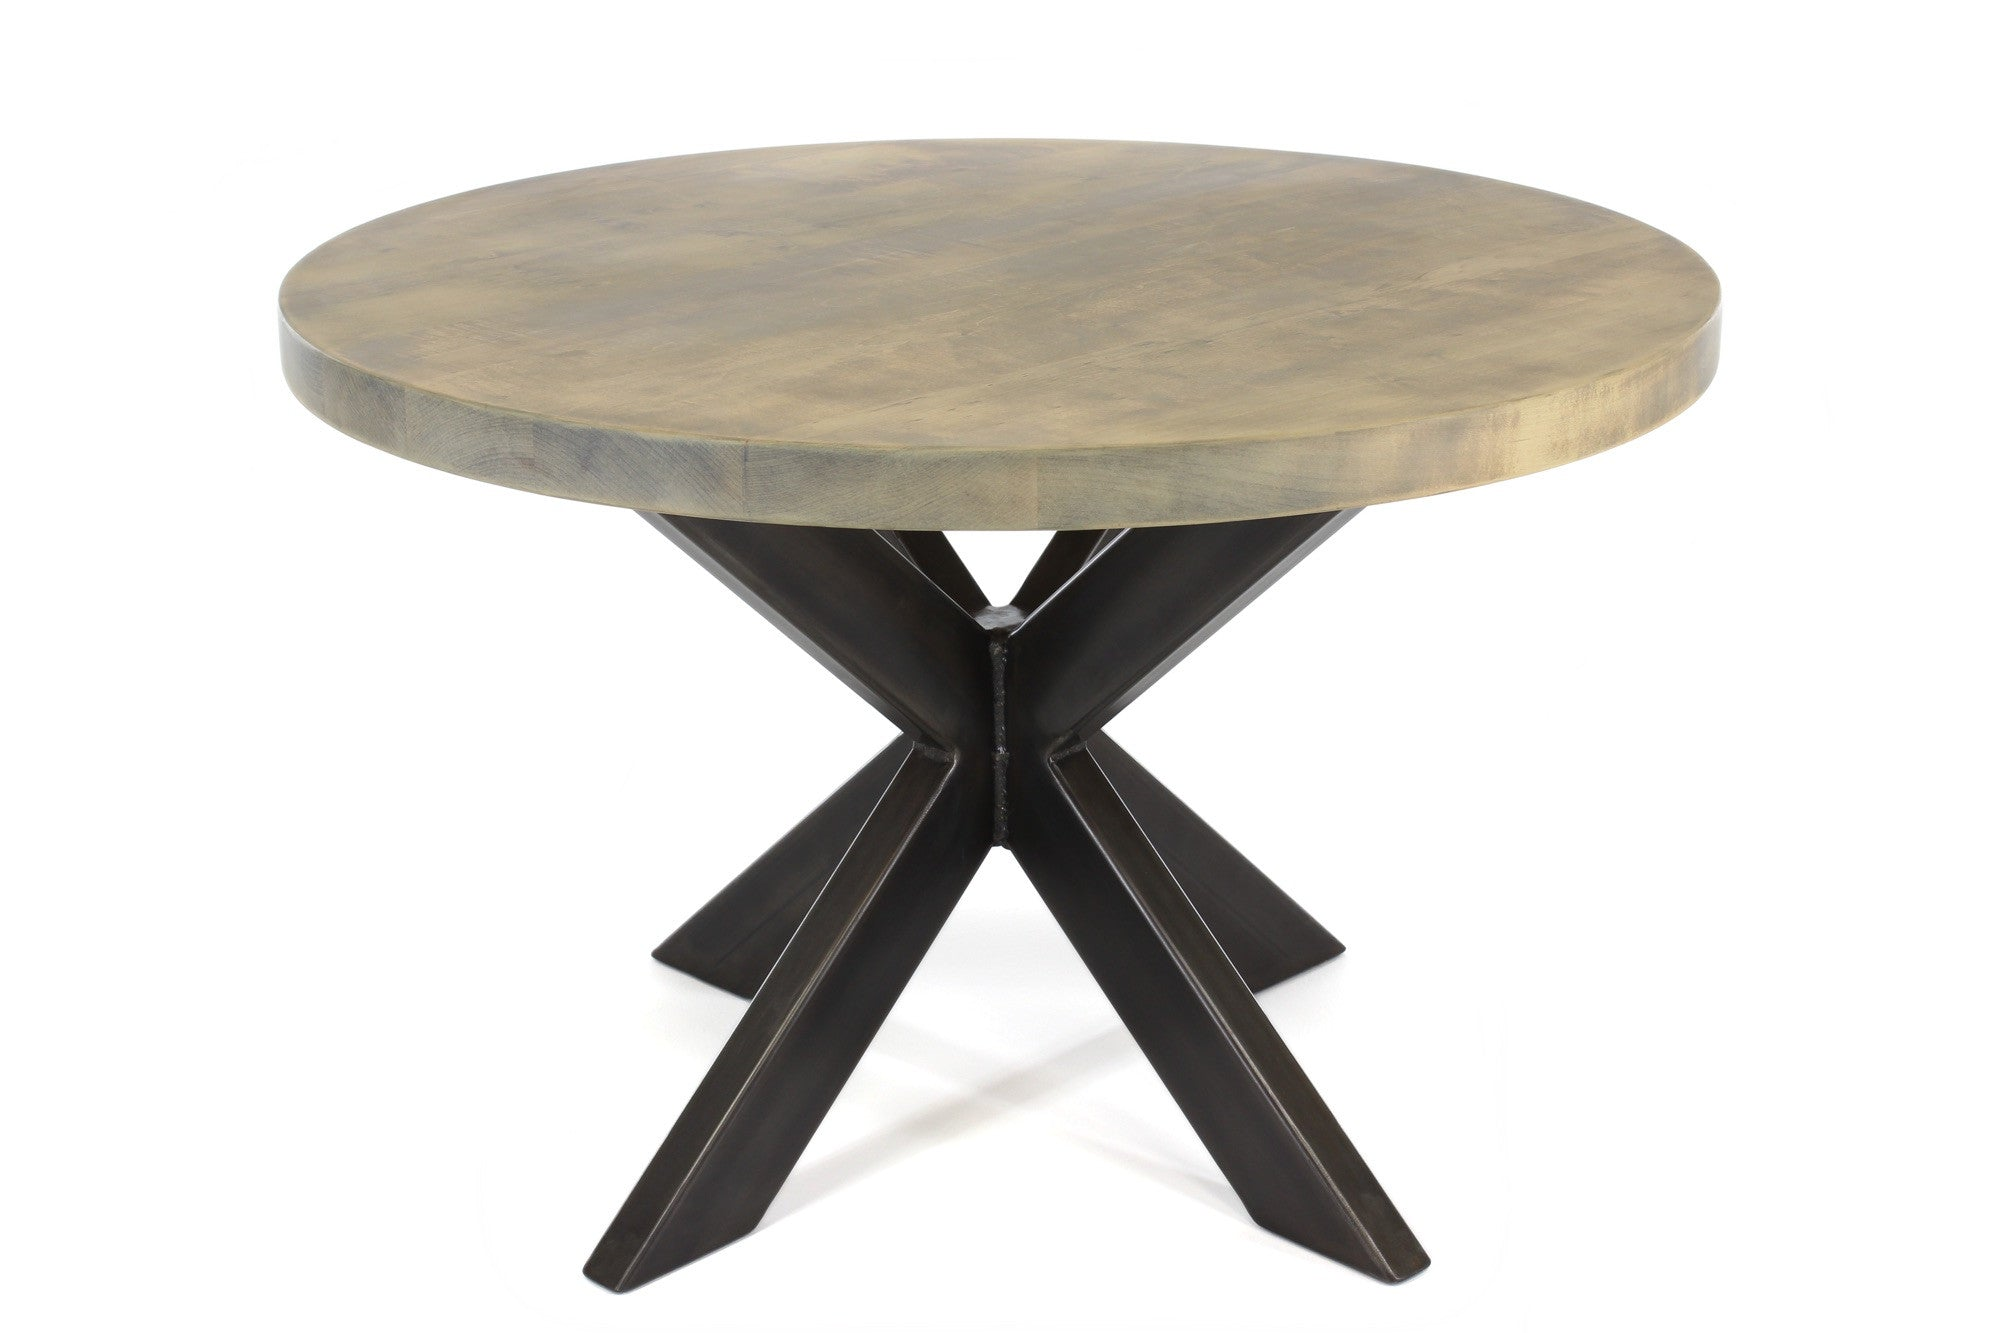 jak dining table | worn maple wood finish with darkened steel